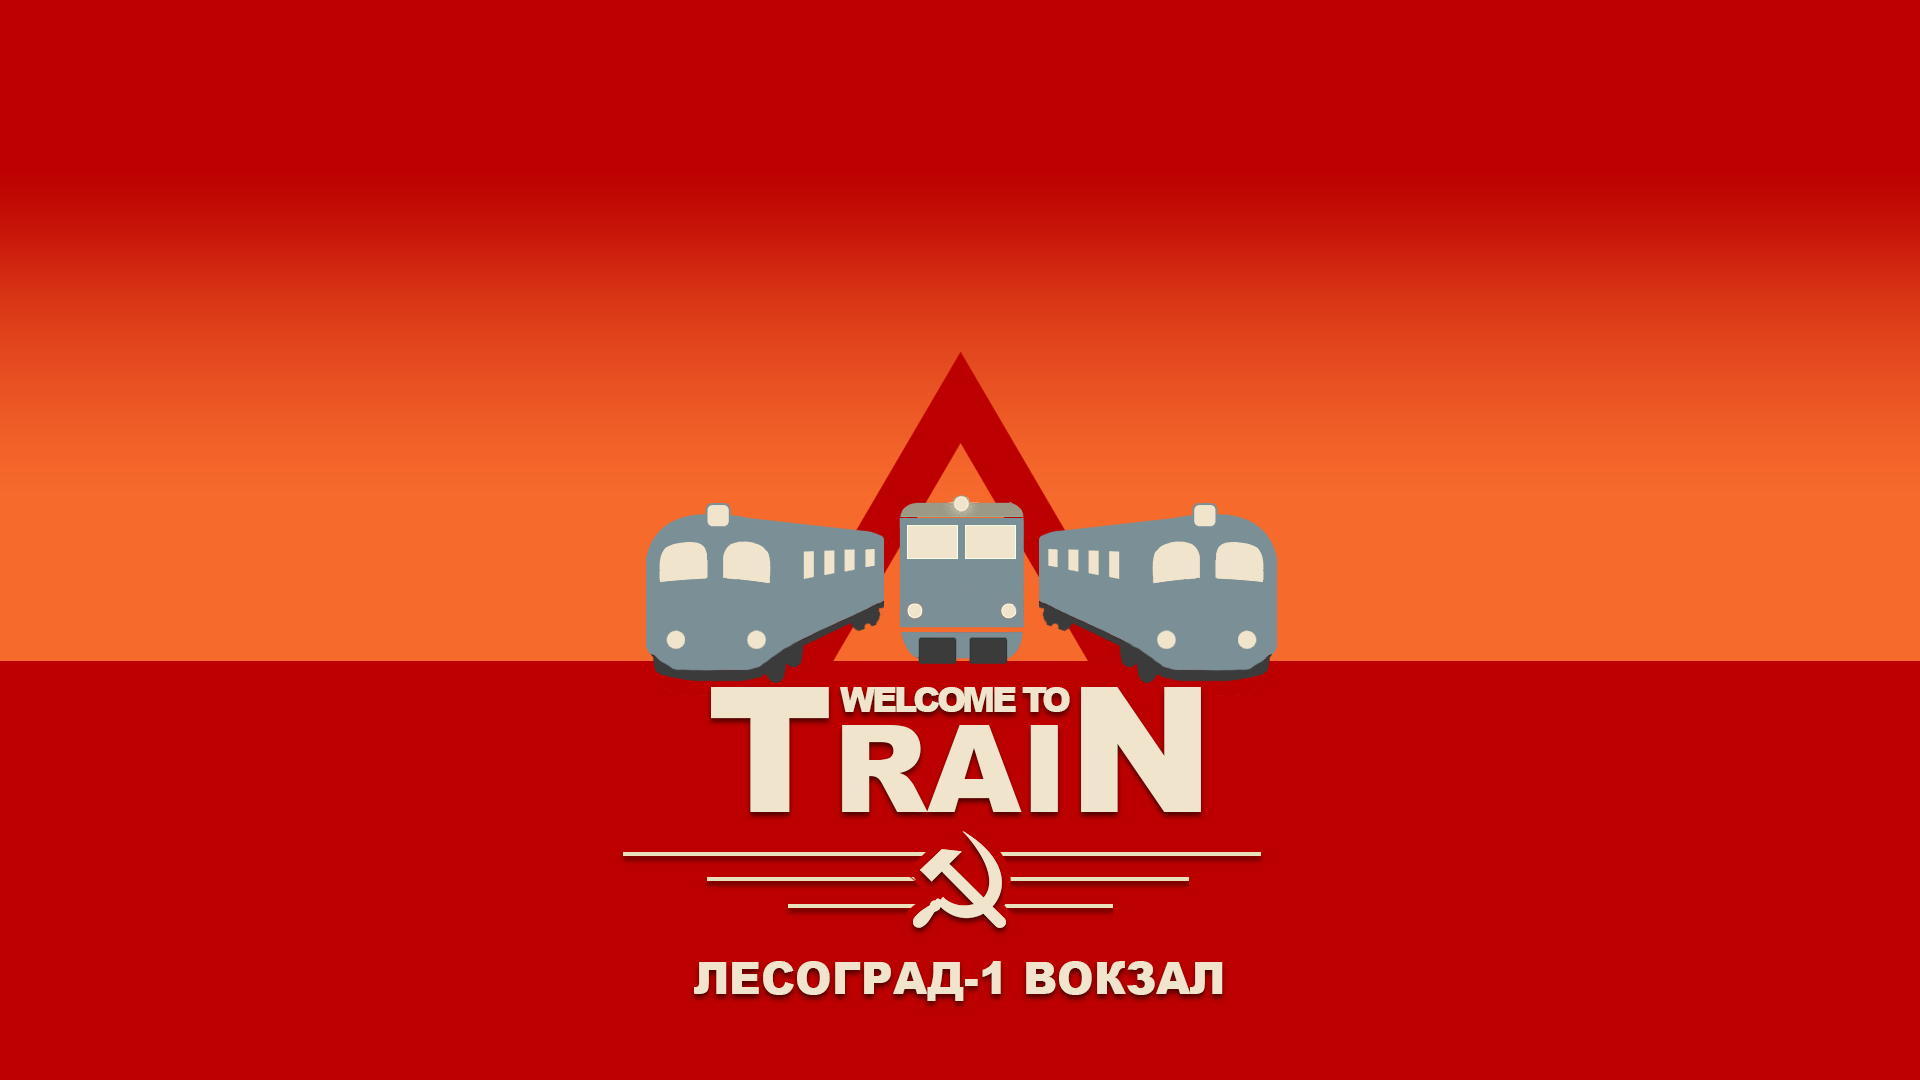 Welcome To Train